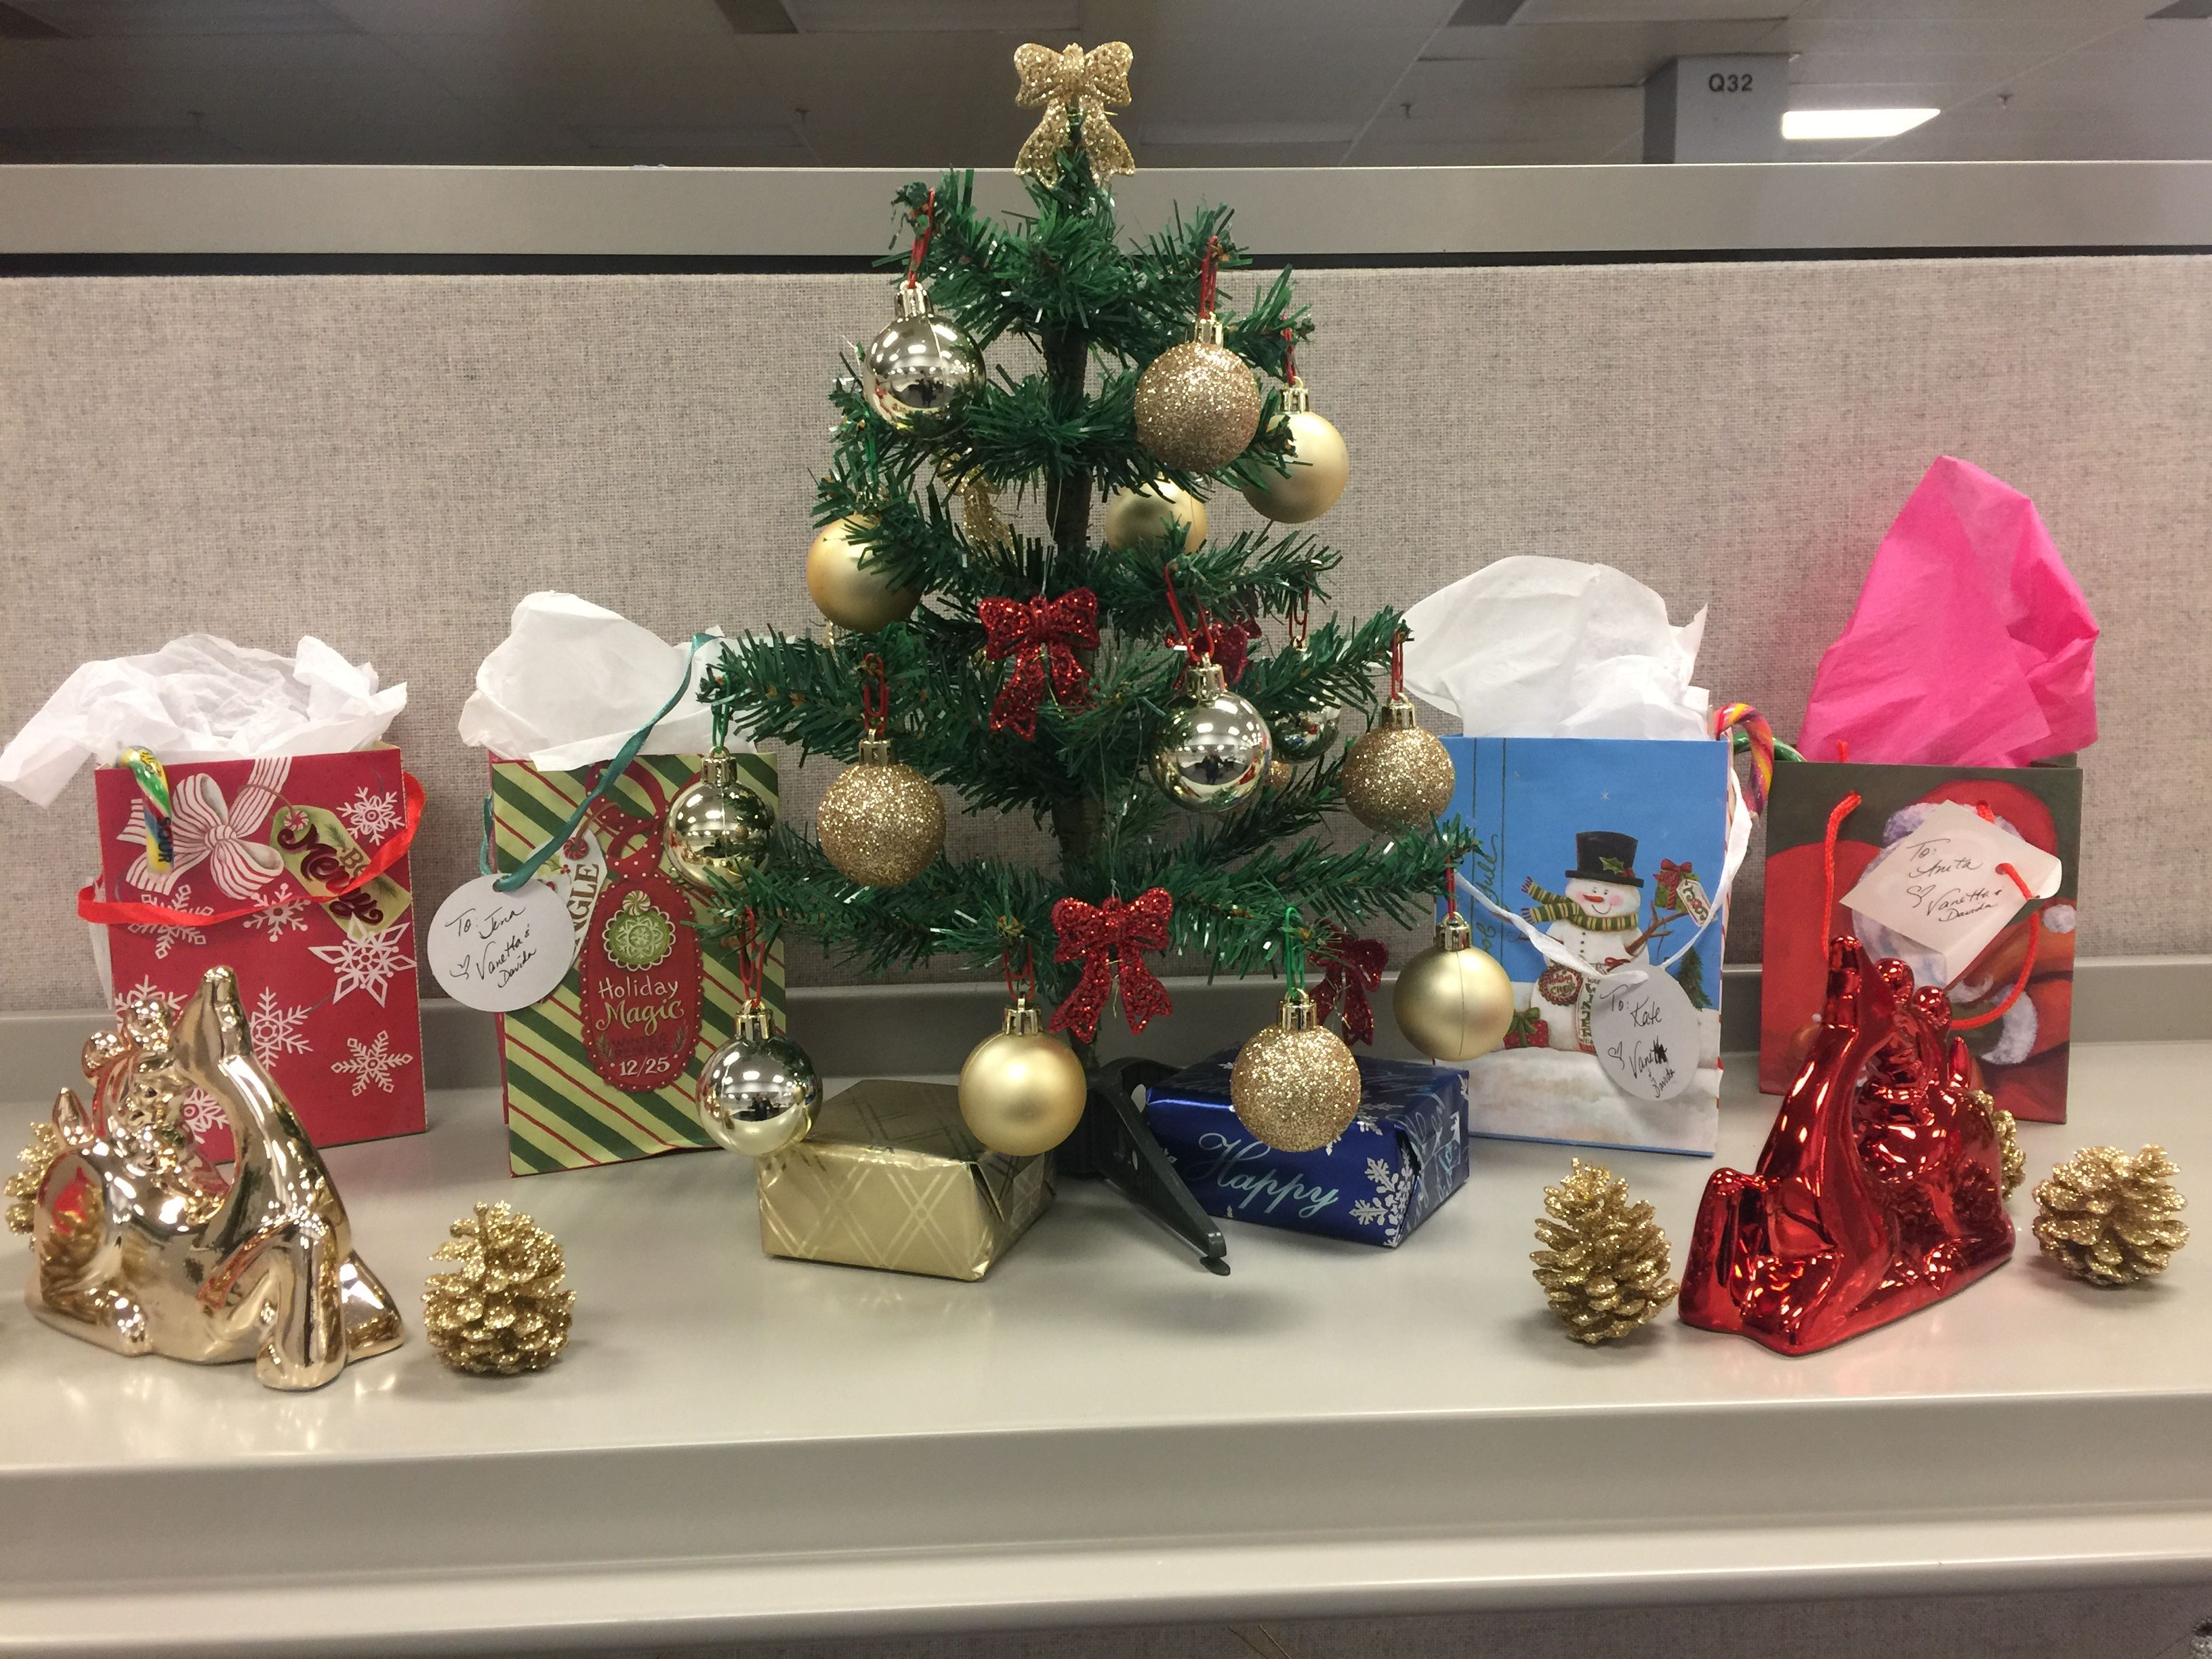 Christmas Decor For A Small Office Space With A Mini Tree, Mini Gifts, Mini